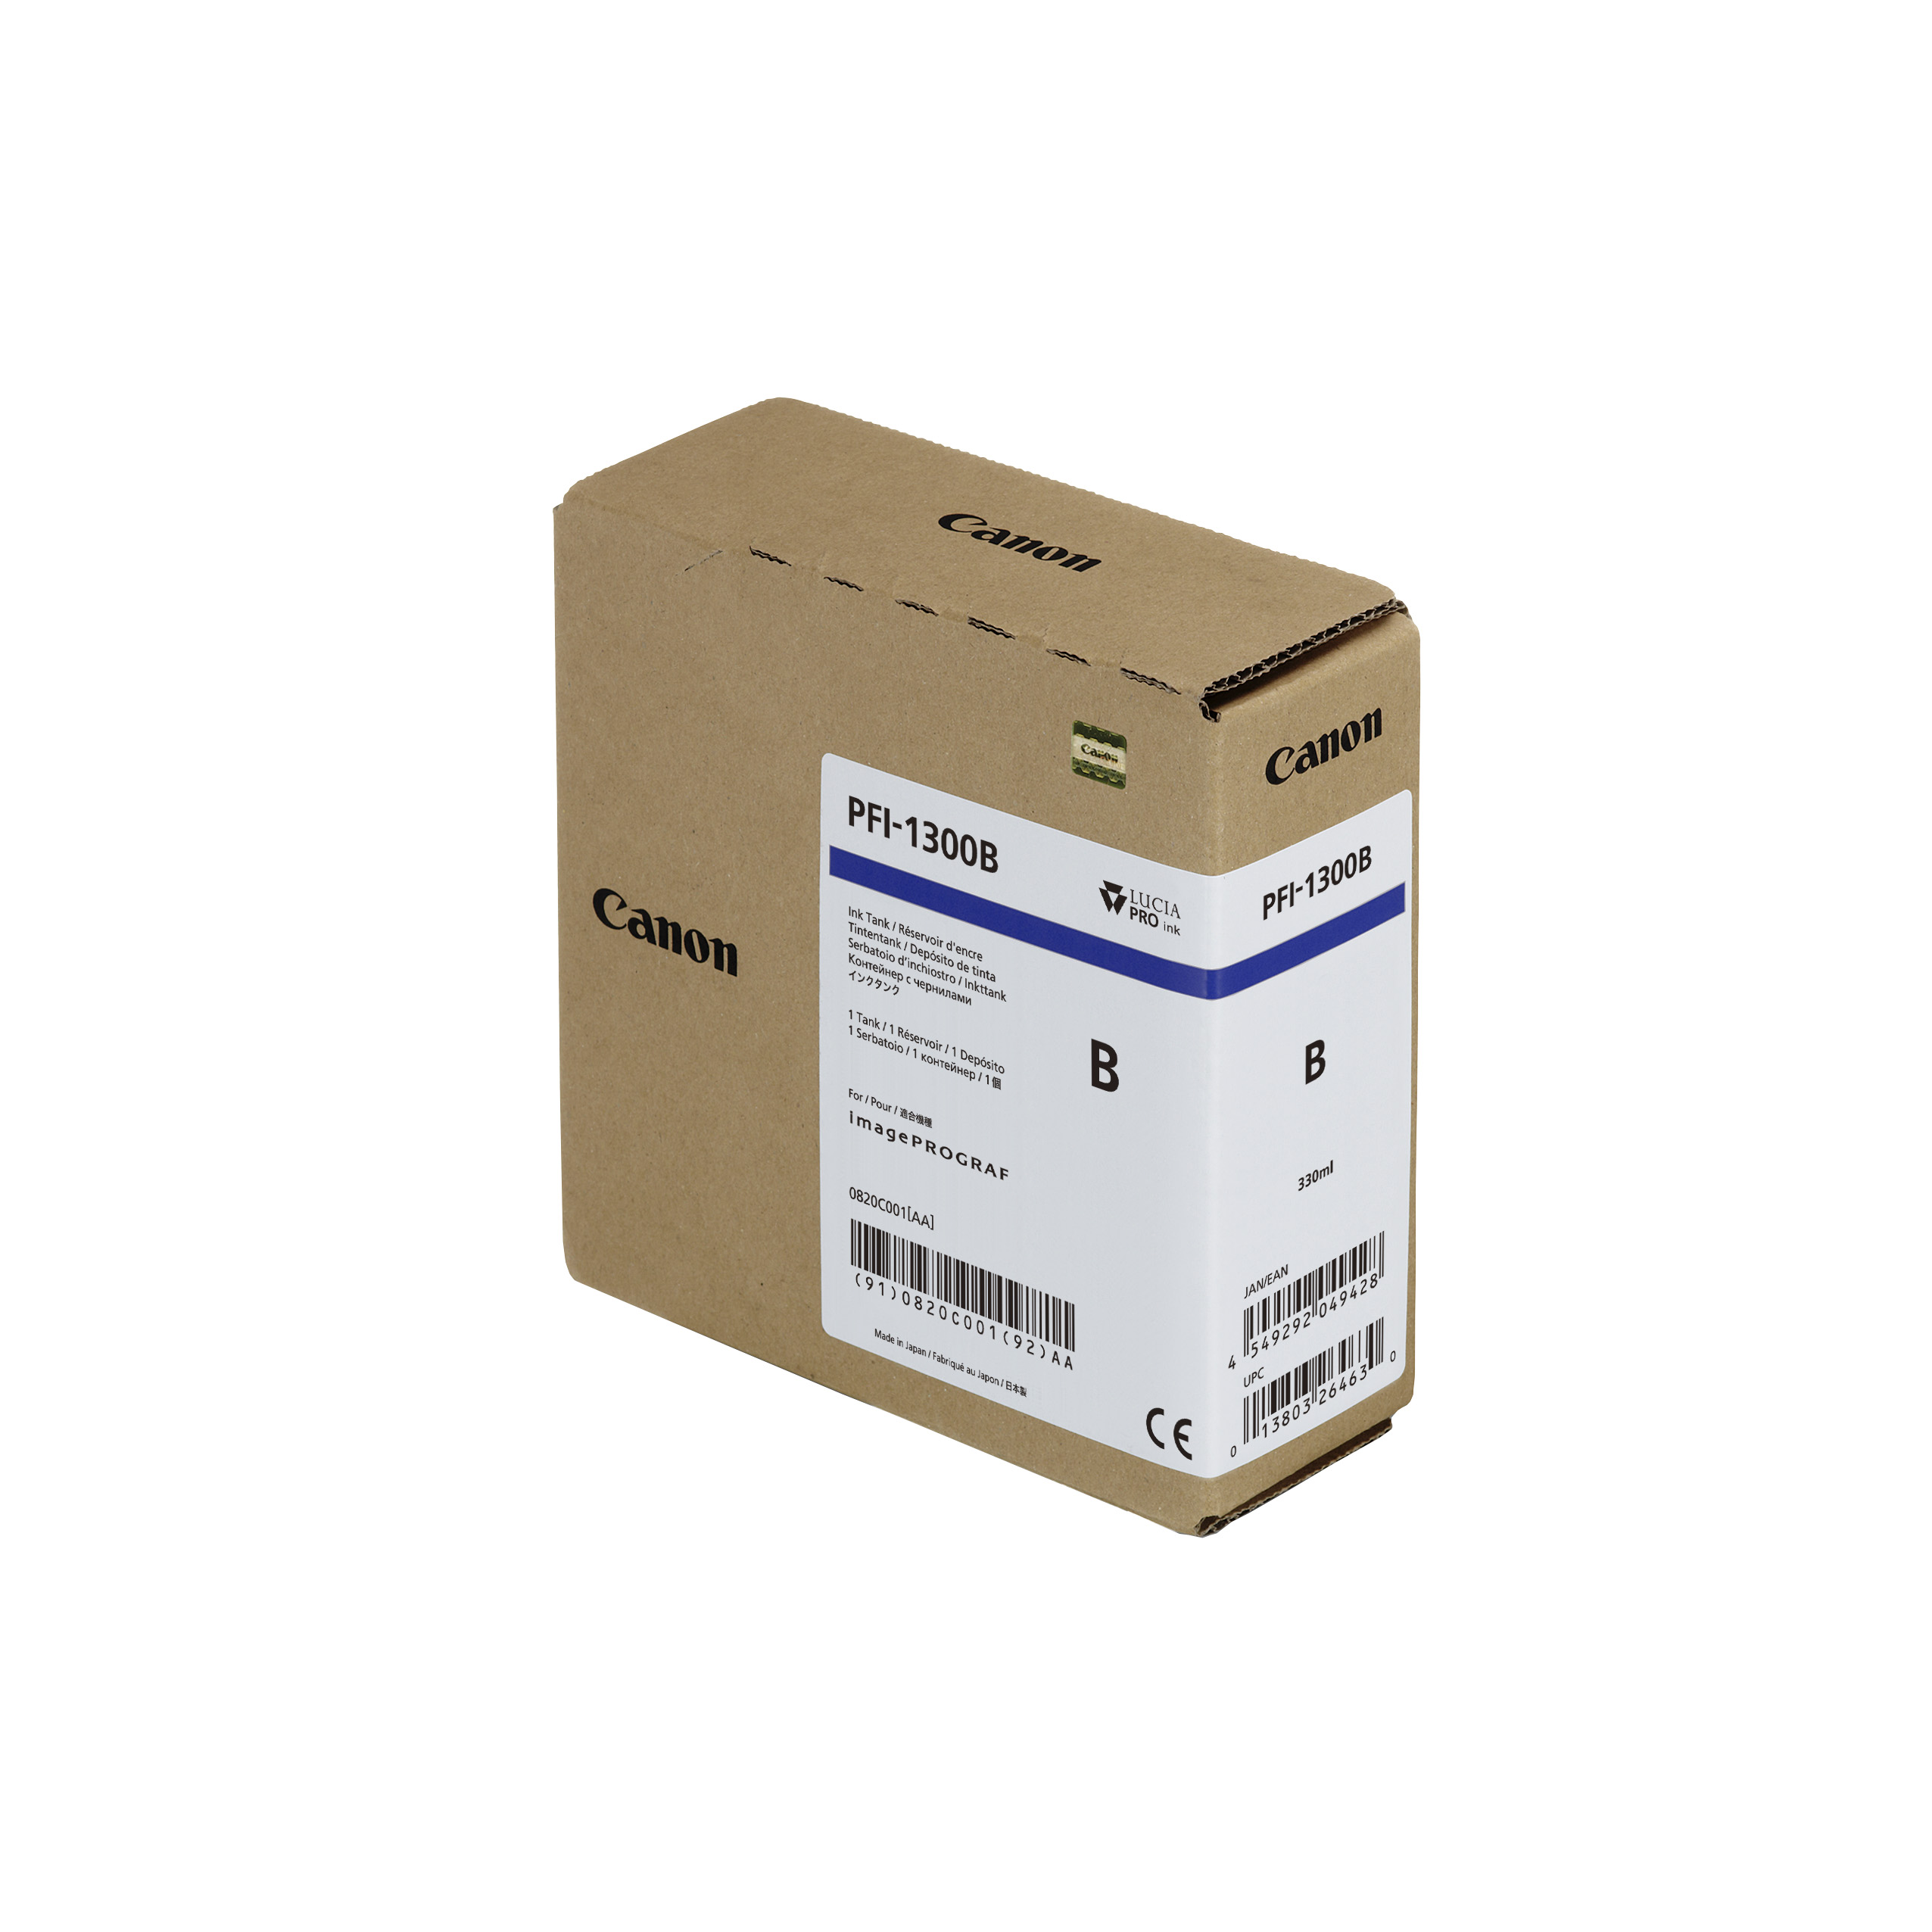 Canon PFI-1300B Blue Ink Tank - 330ml Cartridge - for Canon PRO-2000, PRO-4000 Printers - 0820C001AA  - next day delivery from GDS Graphic Design Supplies Ltd